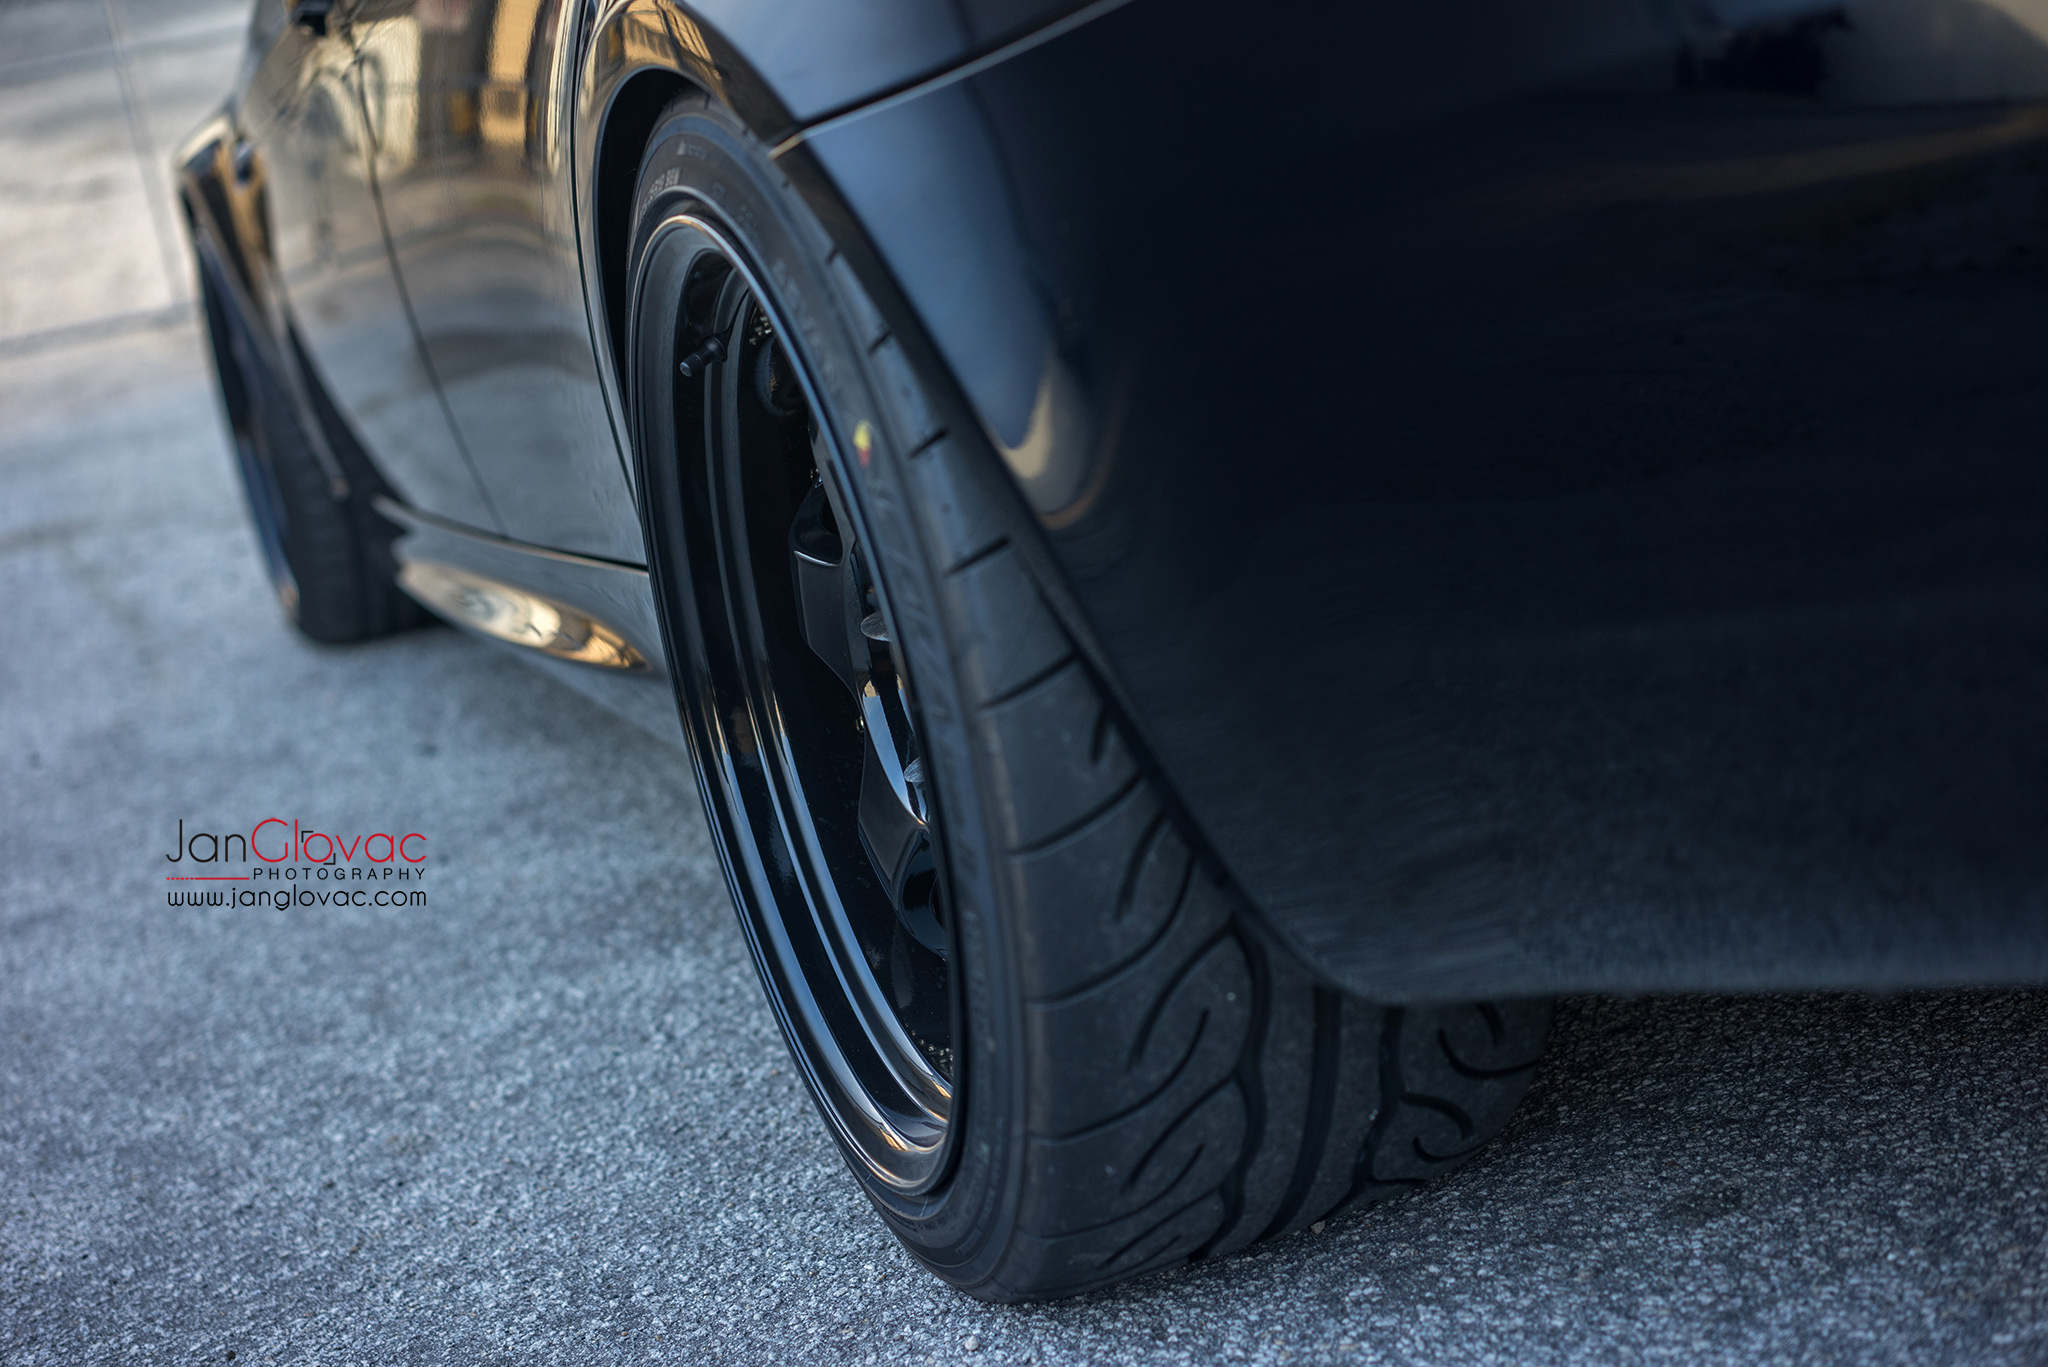 harrop bmw m3 — Blog — Jan Glovac Photography